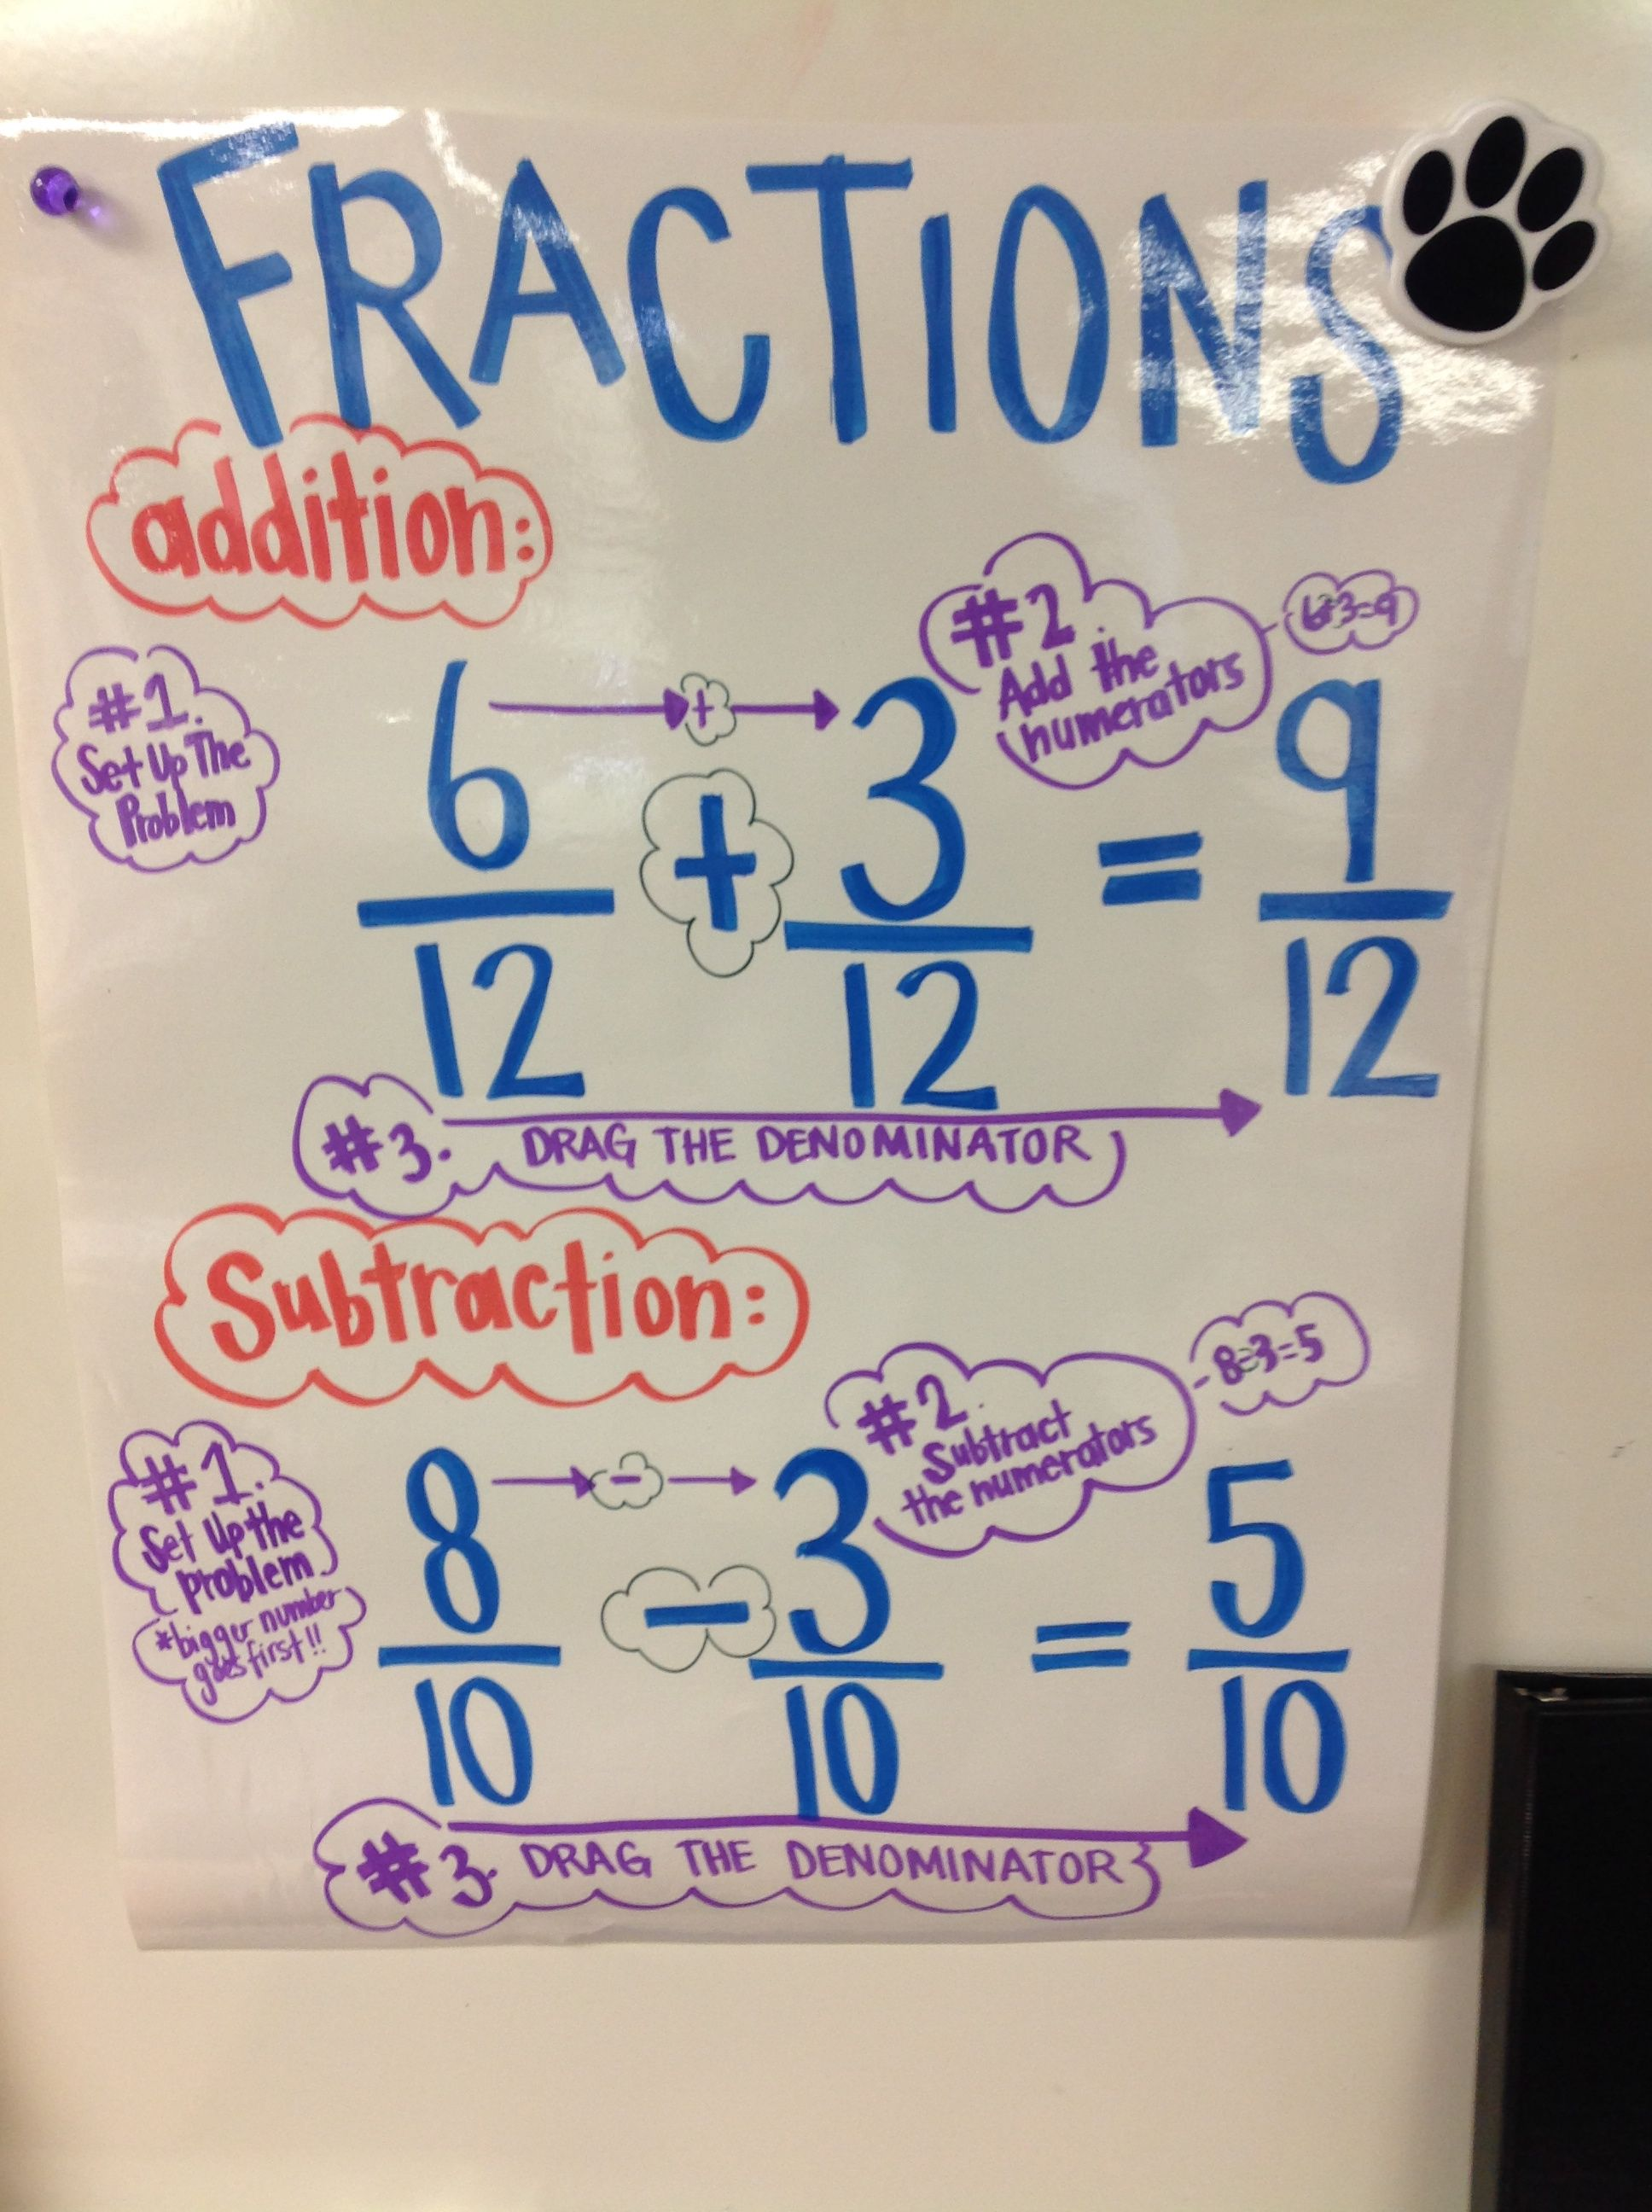 Adding and Subtracting Fractions with Like Denominators Adding Fractions, Adding And Subtracting Fractions, Operations With Fractions, 4th Grade Fractions, Fourth Grade Math, Multiplication, Fraction Activities, Math Resources, Math Activities